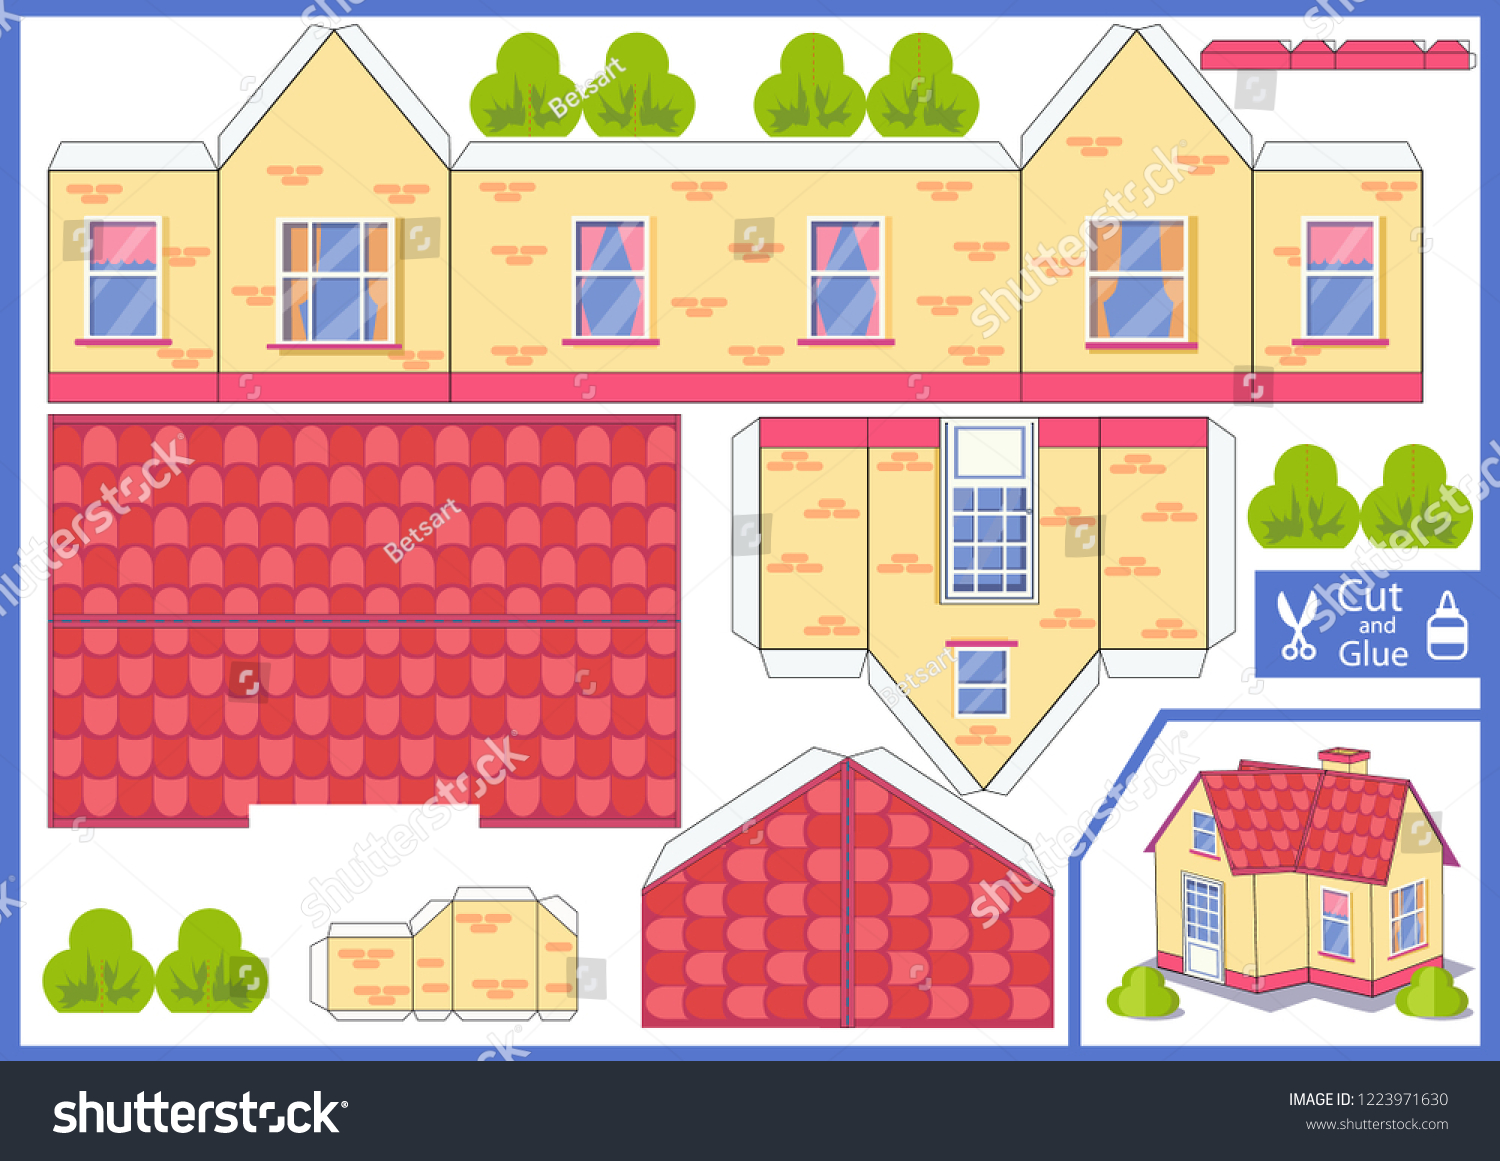 3d House Cut Glue Paper House Stock Vector Royalty Free 1223971630